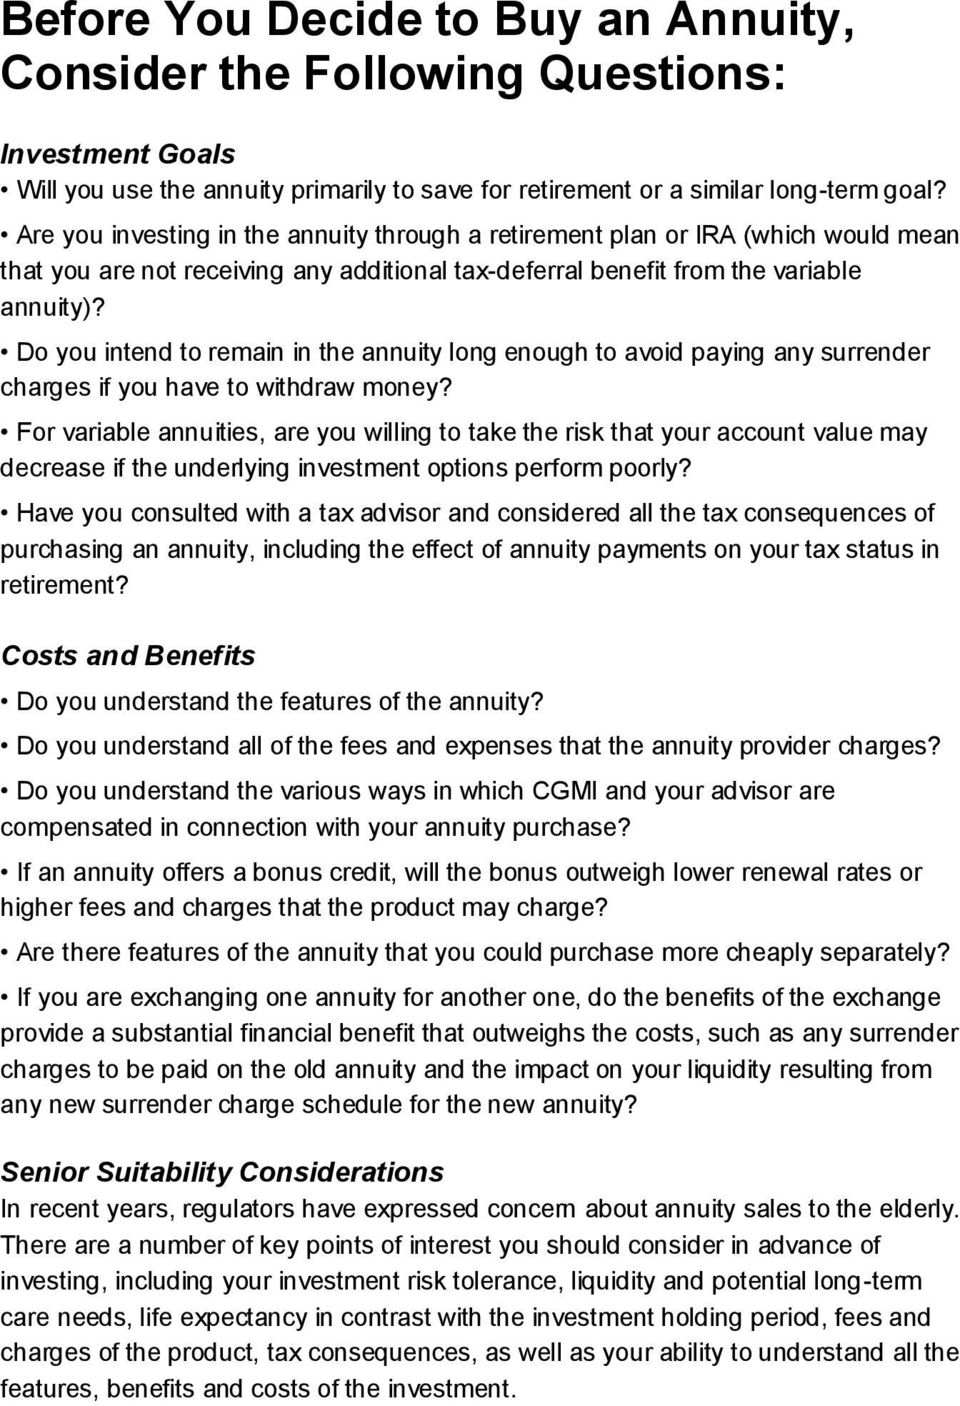 Do you intend to remain in the annuity long enough to avoid paying any surrender charges if you have to withdraw money?